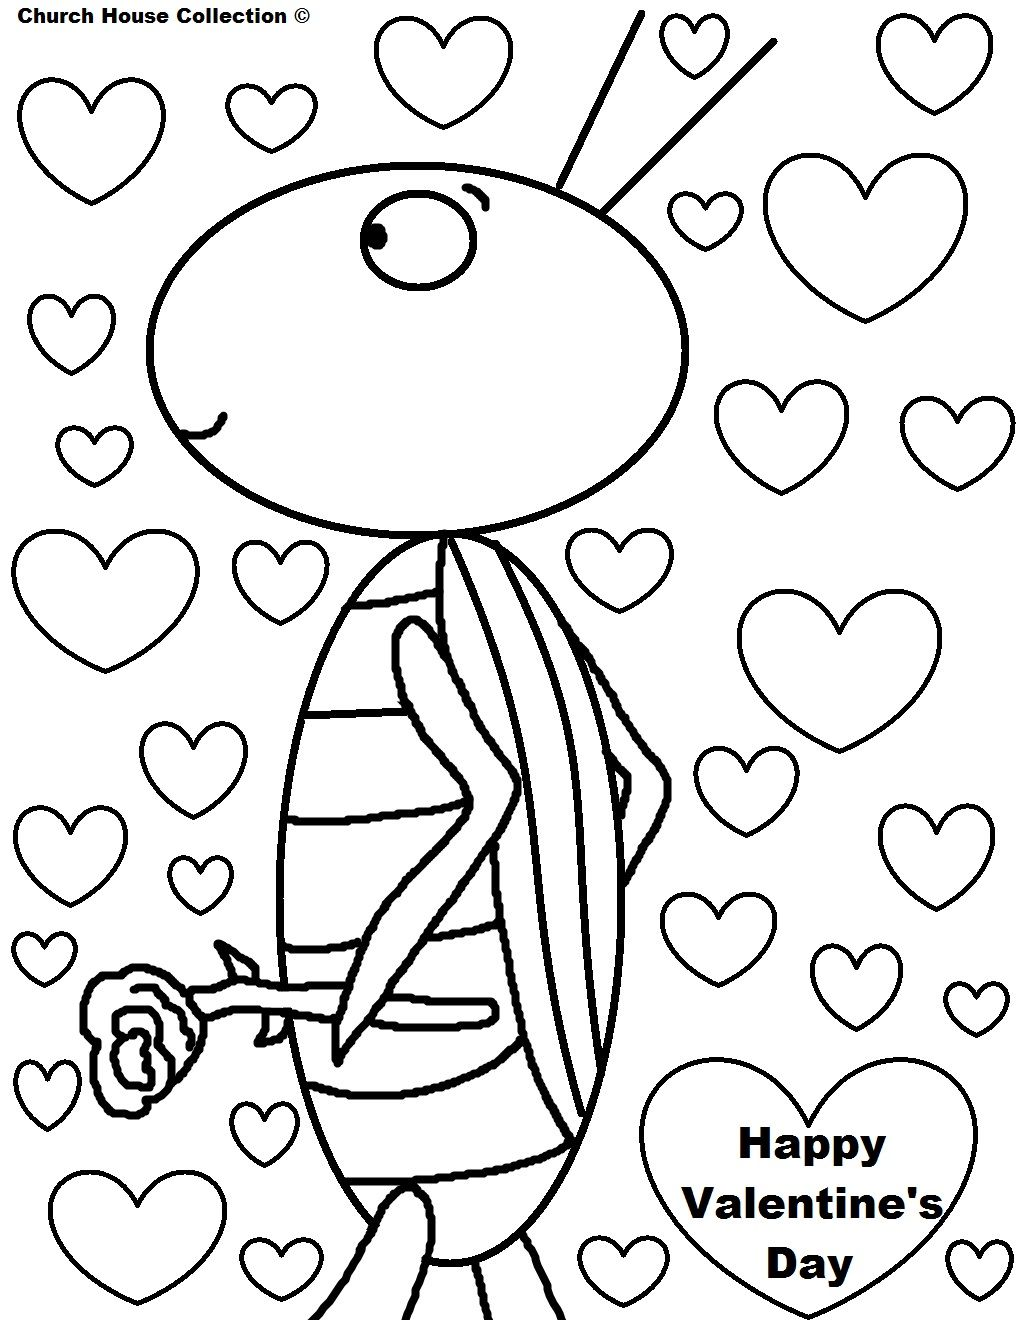 Valentines Day Coloring Sheets Collection Blog Valentine S Day Color Valentines Day Coloring Page Printable Valentines Coloring Pages Valentine Coloring